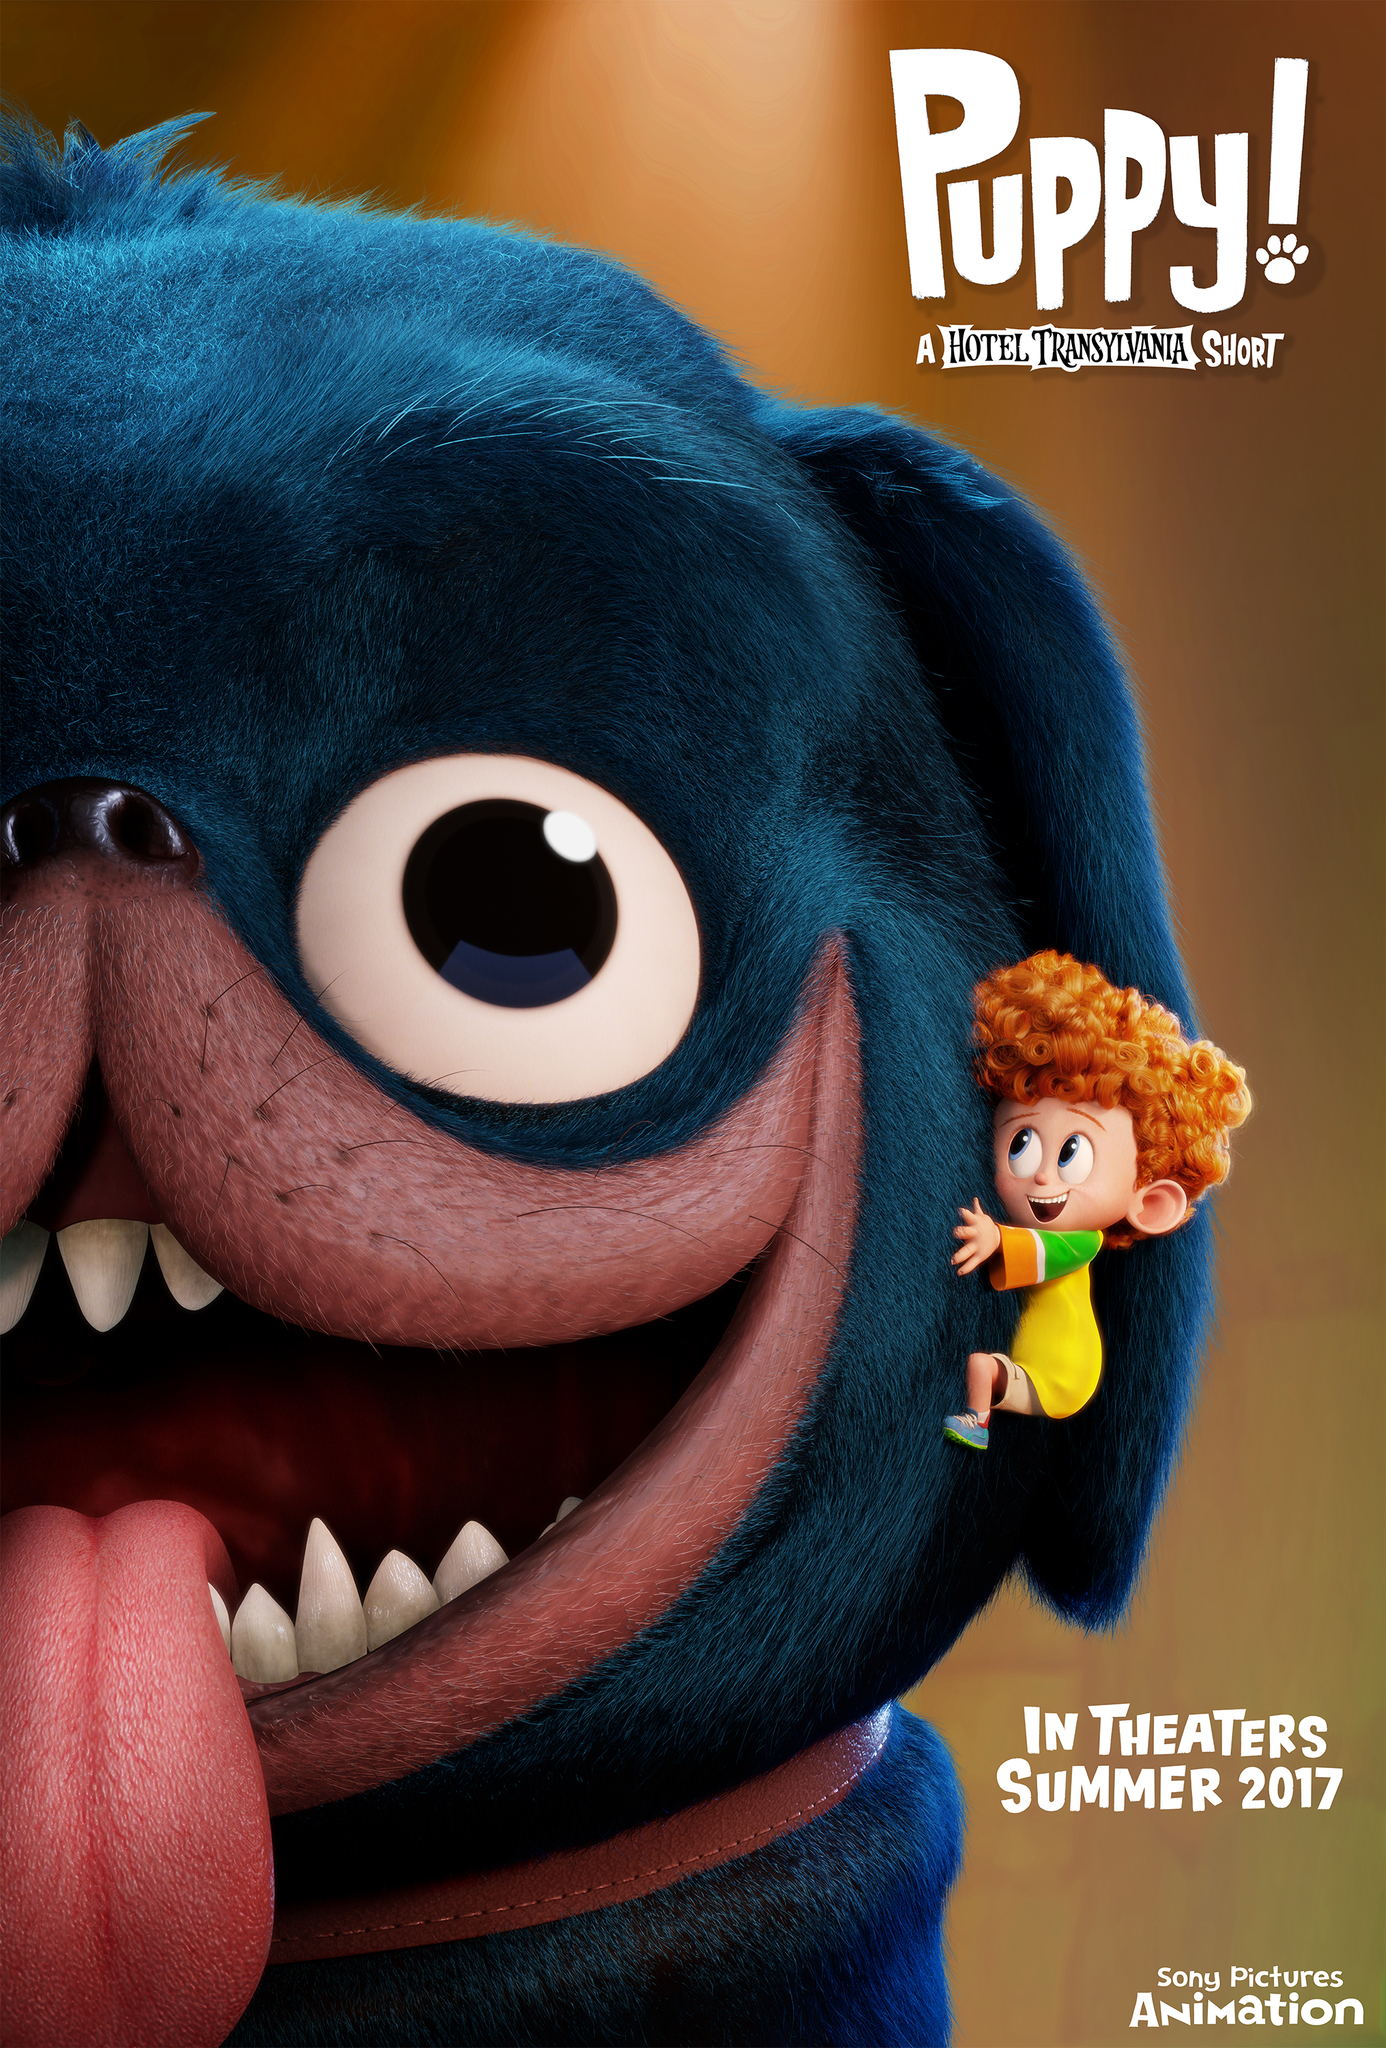 Puppy Hotel Transylvania (2017) - shortfilmtoday